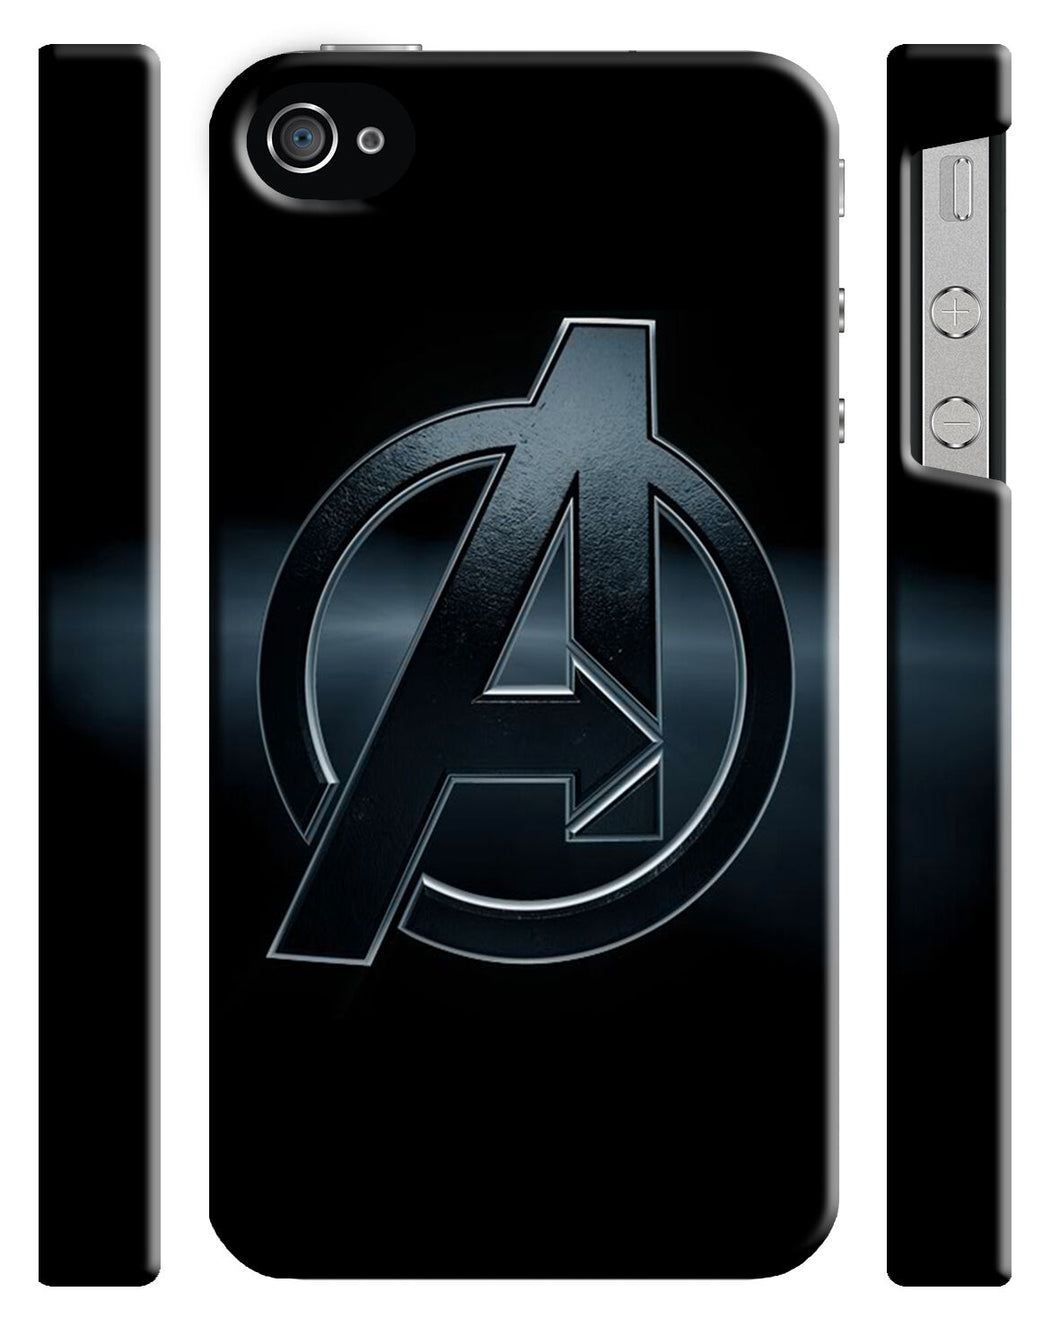 Avengers Age Of Ultron Logo Iphone 4 4s 5 5s 5c 6 6S + Plus Cover Case Comics